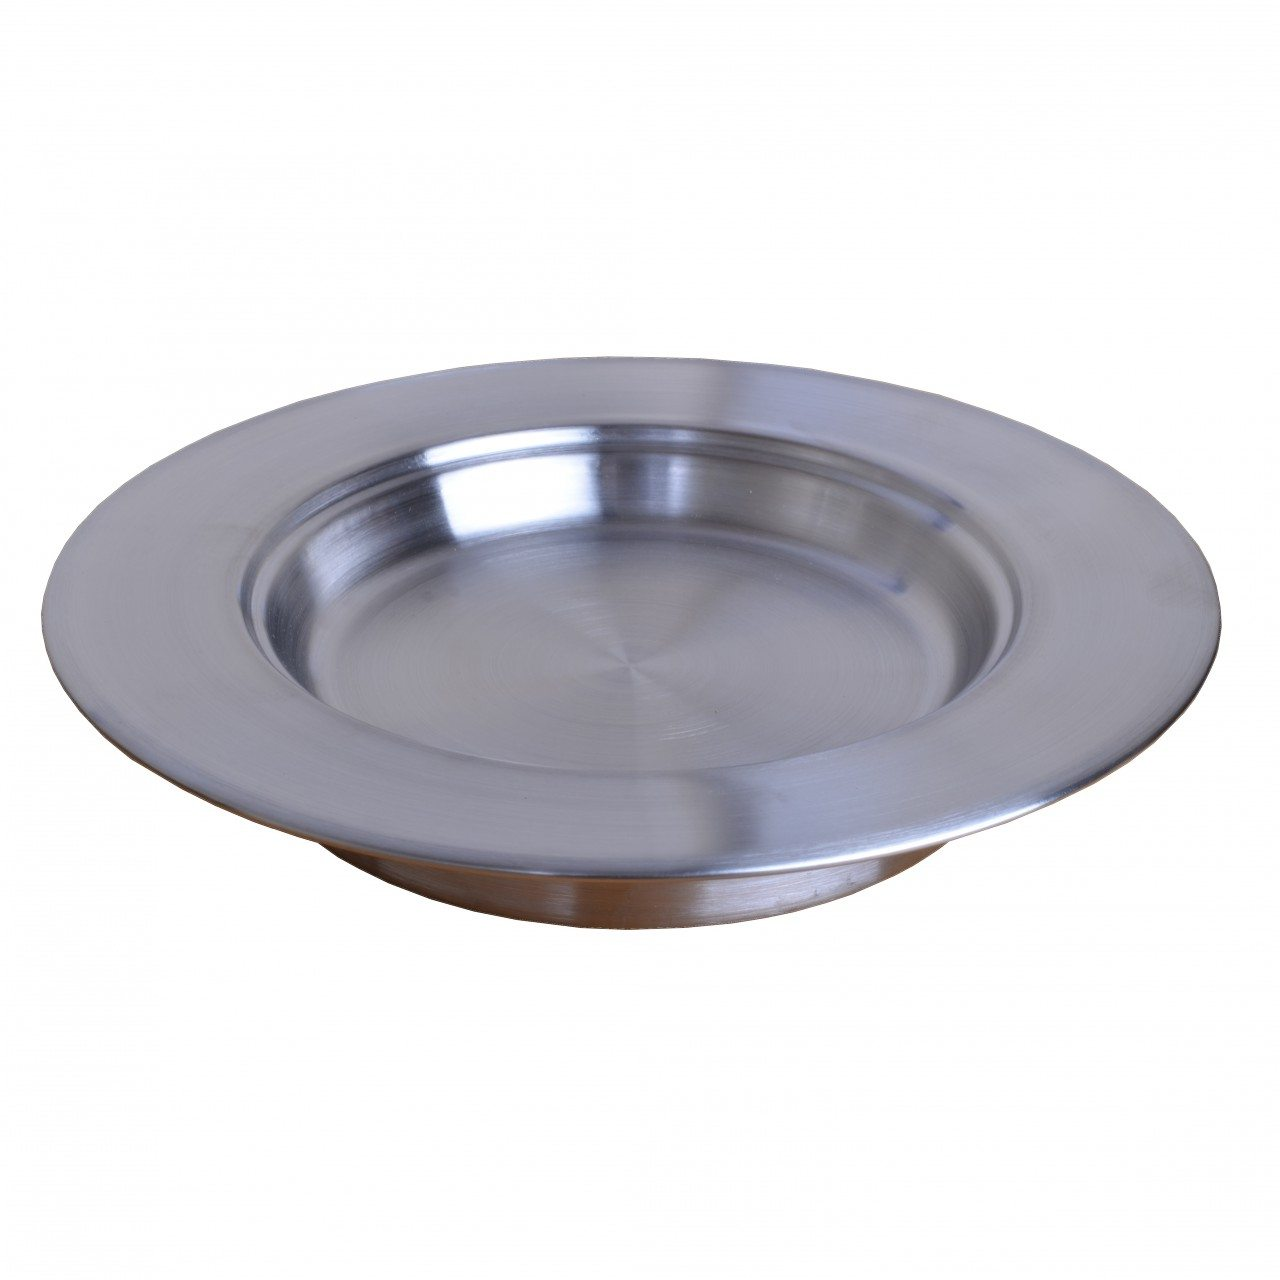 Stainless Steel Bread Plate Grace Church Supplies